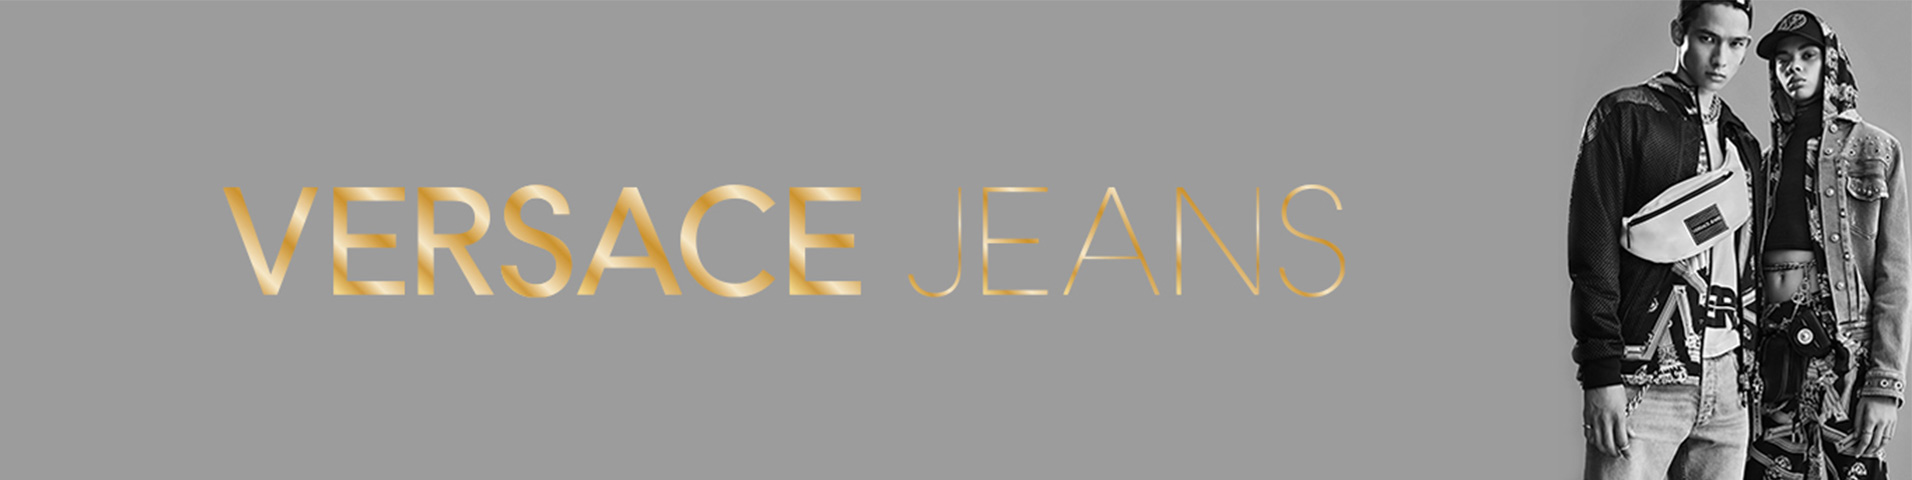 Catalogue from Versace Jeans · WomenMen 9957d0af08ba8